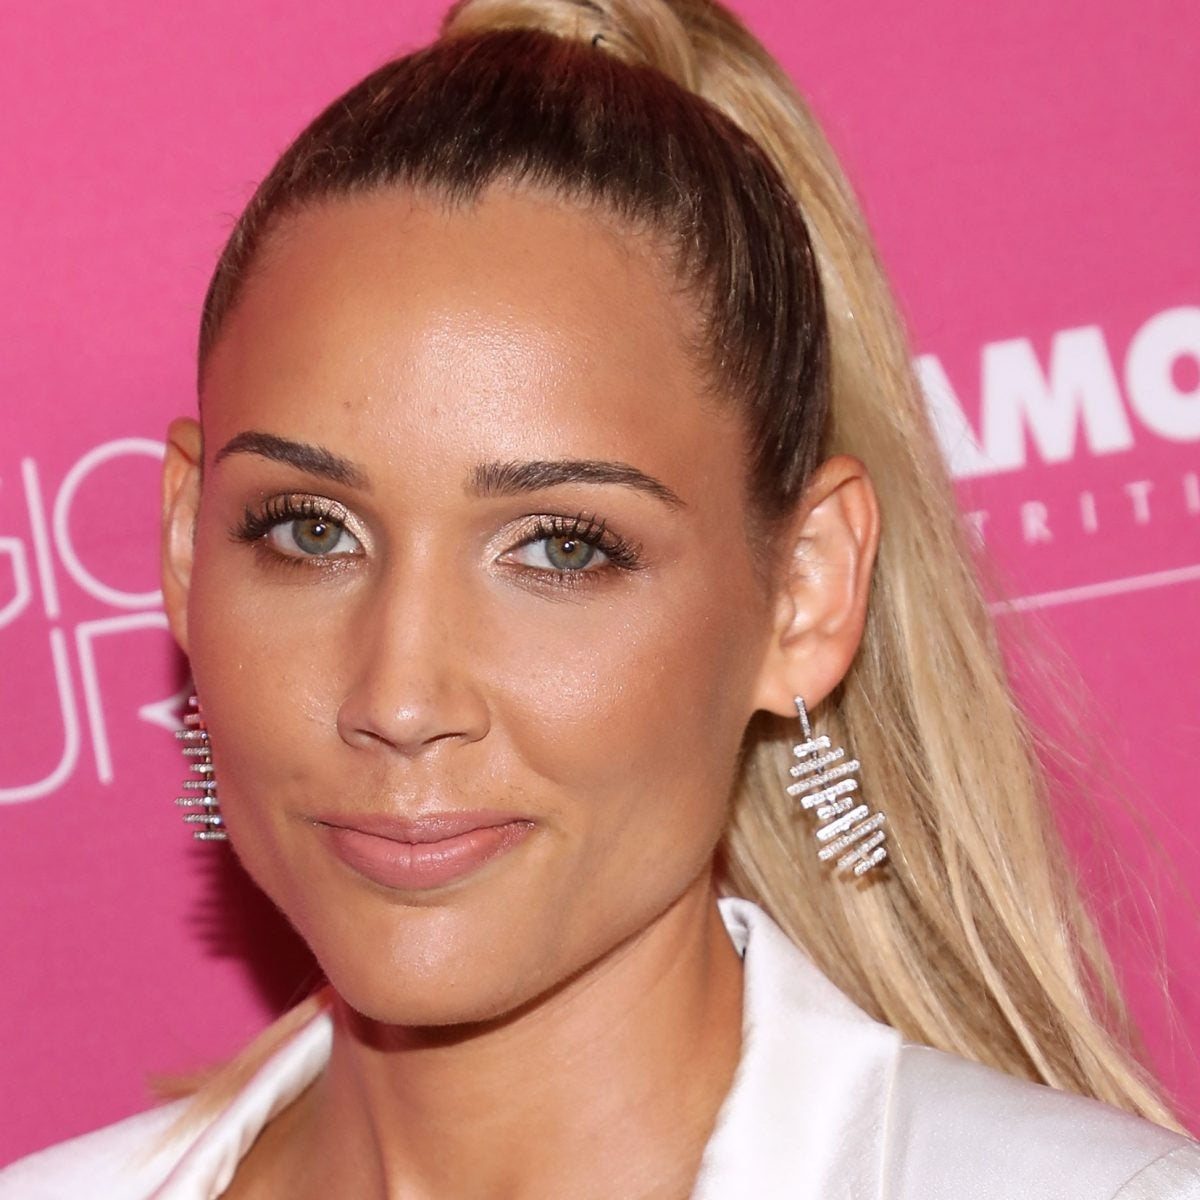 Lolo Jones And 7 Other Celebrity Women Who've Vented Their Frustration With Dating